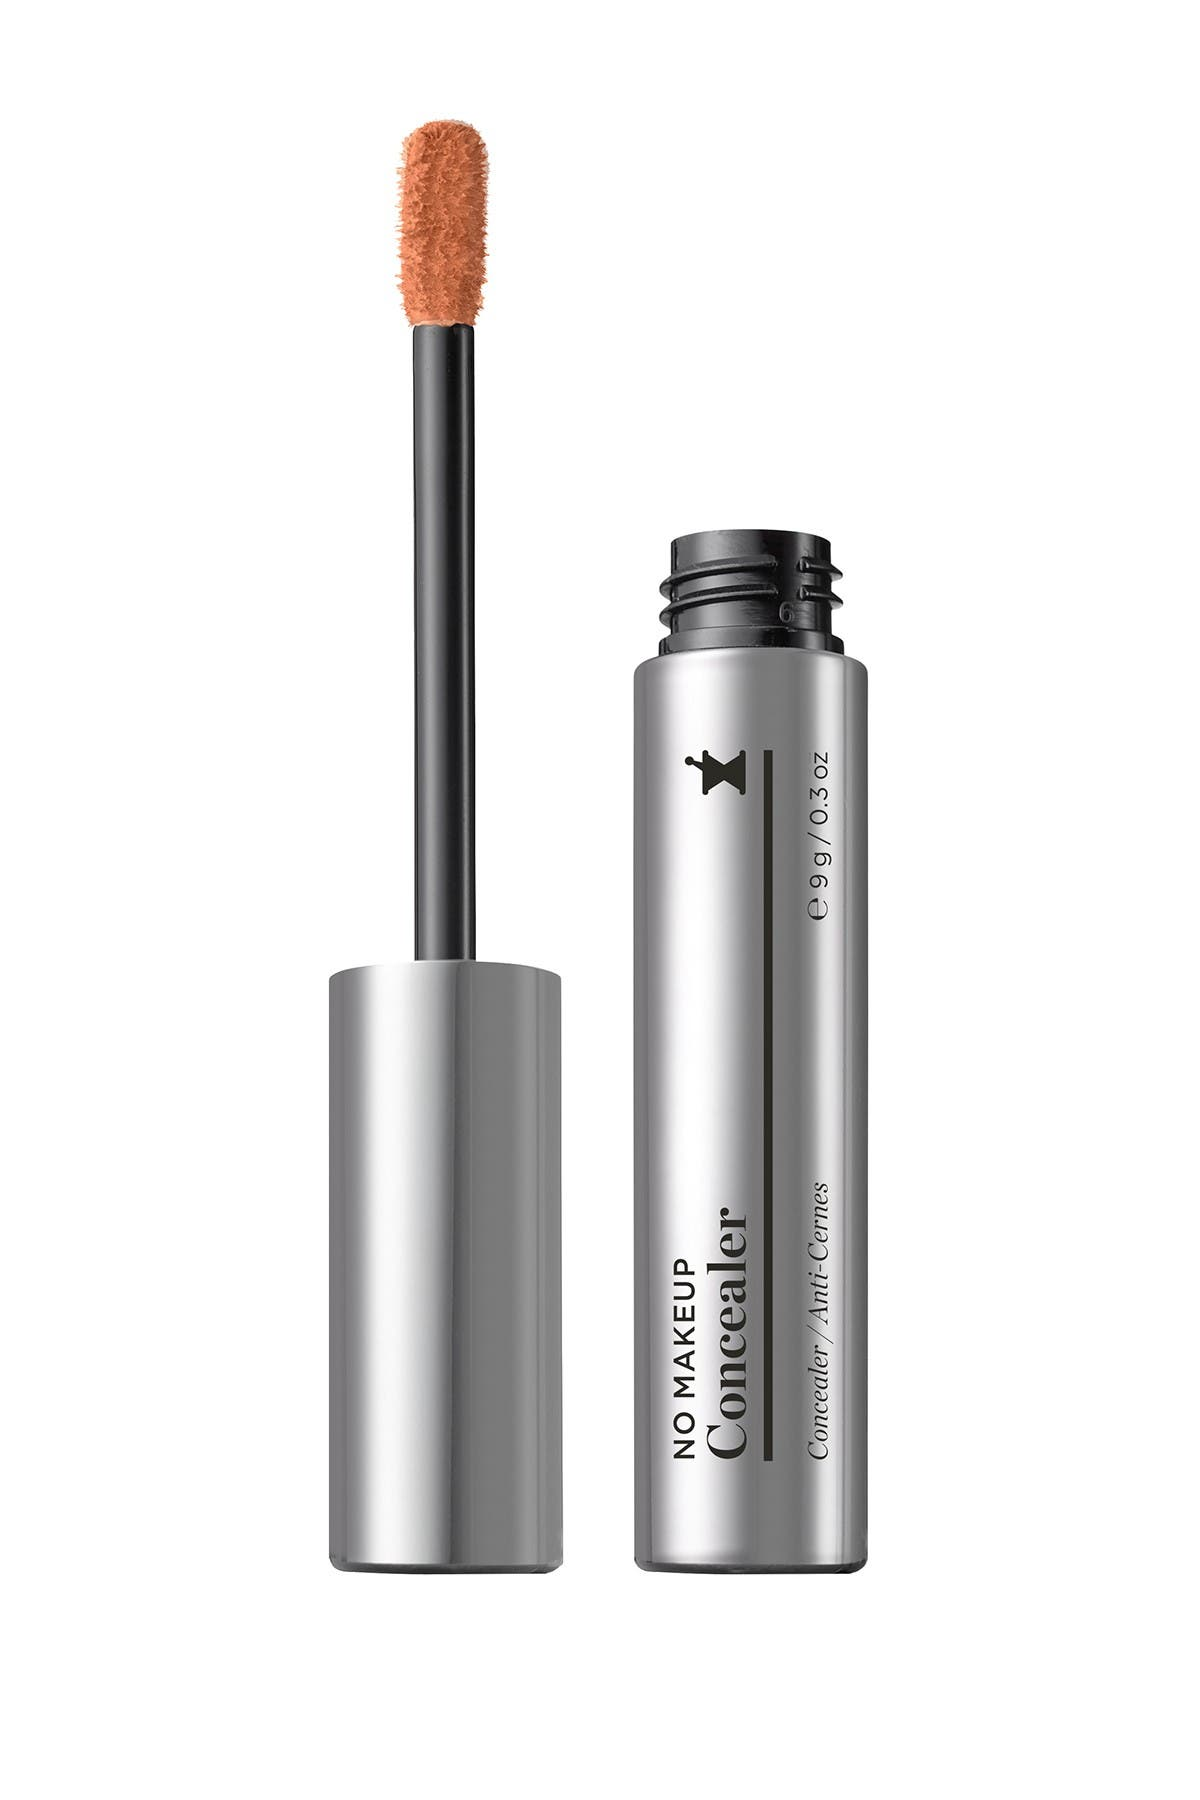 Image of Perricone MD No Makeup Concealer - Light